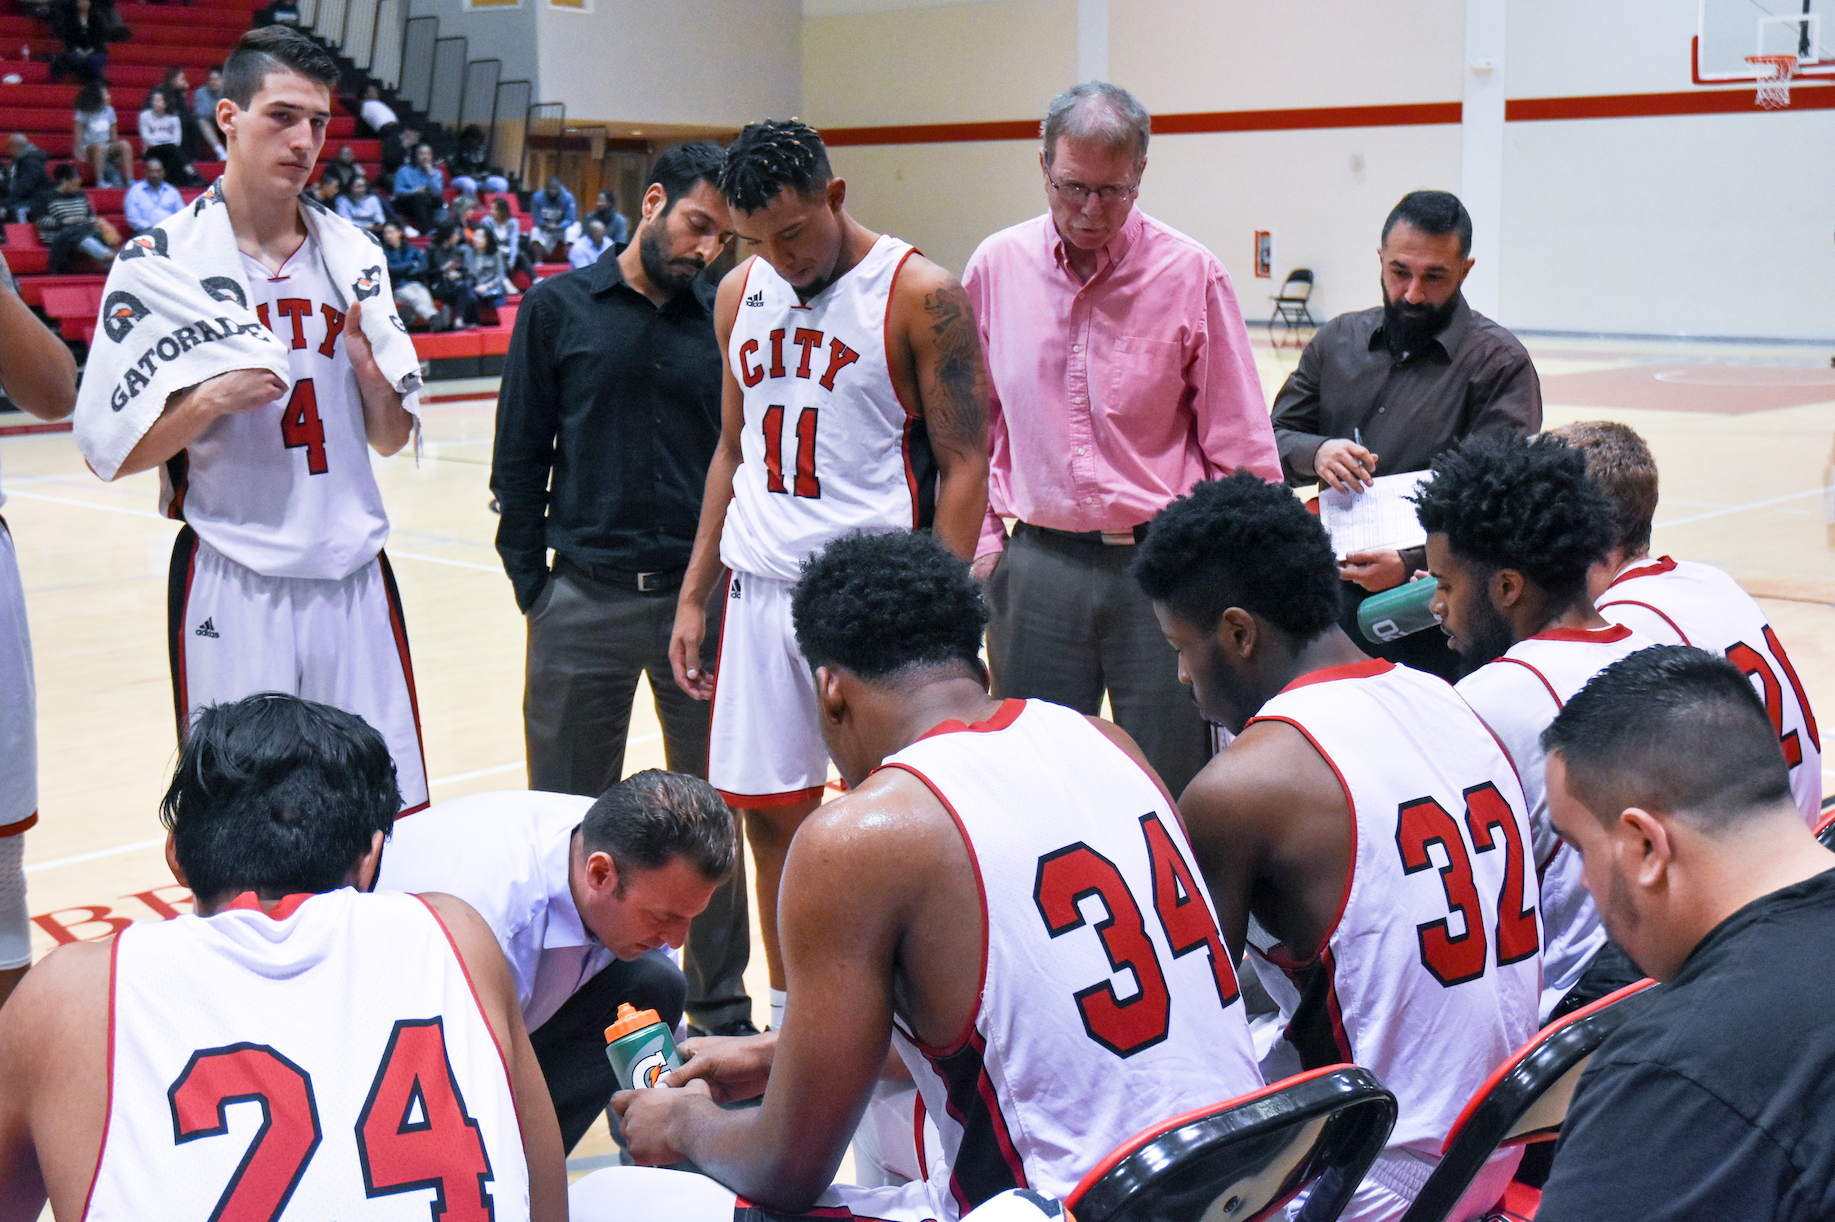 Ram's Head Coach Justin Labagh gathers men's basetball team around to run a design play against Ohlone College on Feb. 16, 2018. Photo by Michael Menaster/special to The Guardsman.